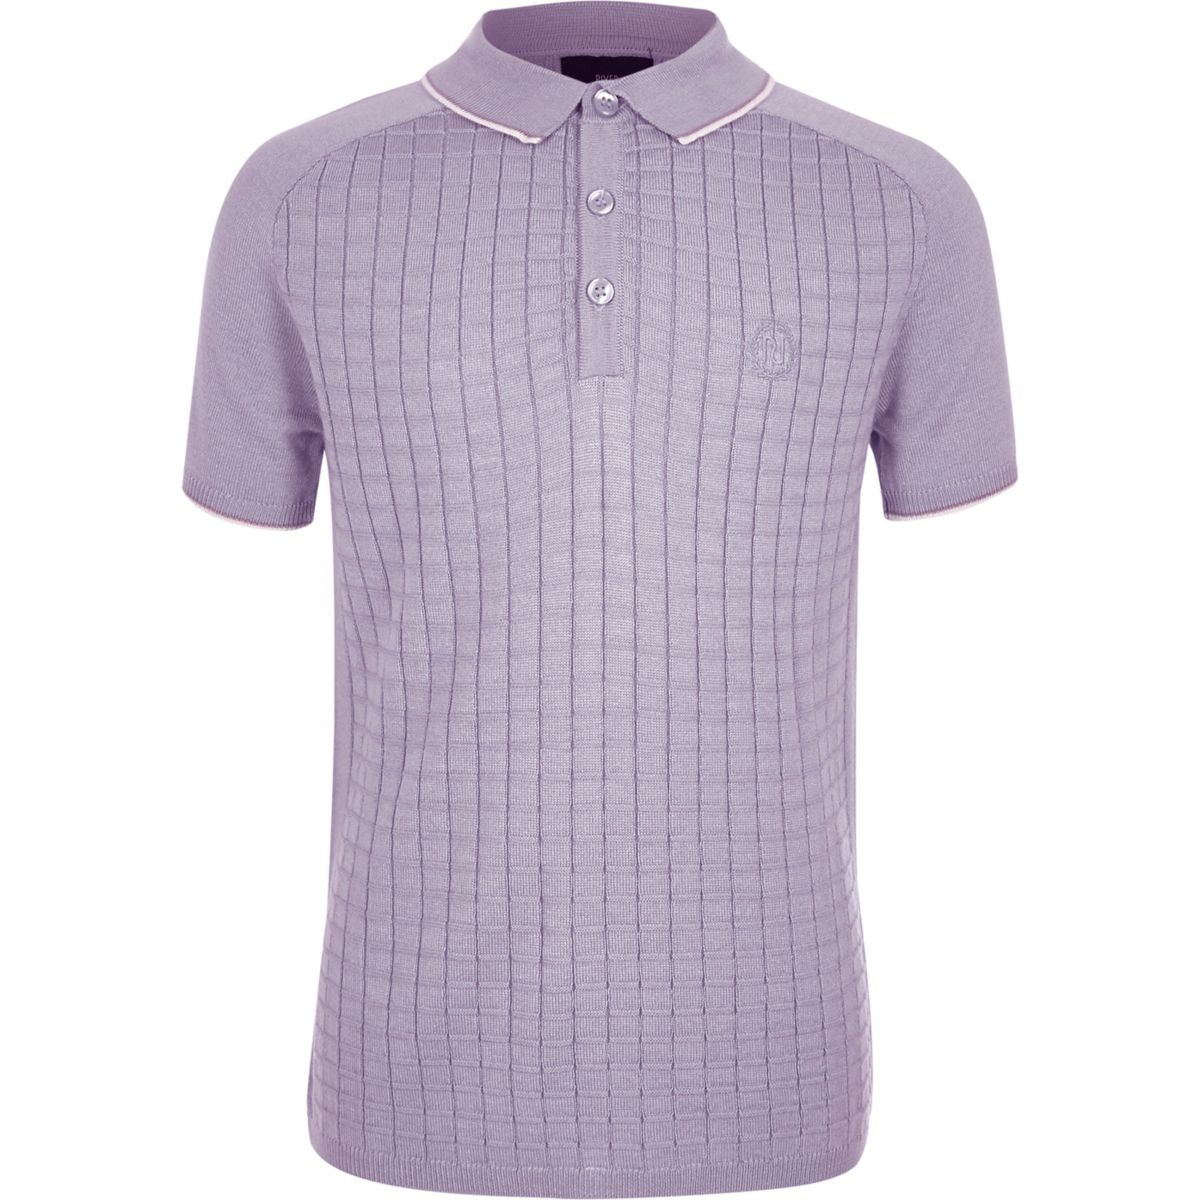 Boys purple short sleeve grid polo shirt